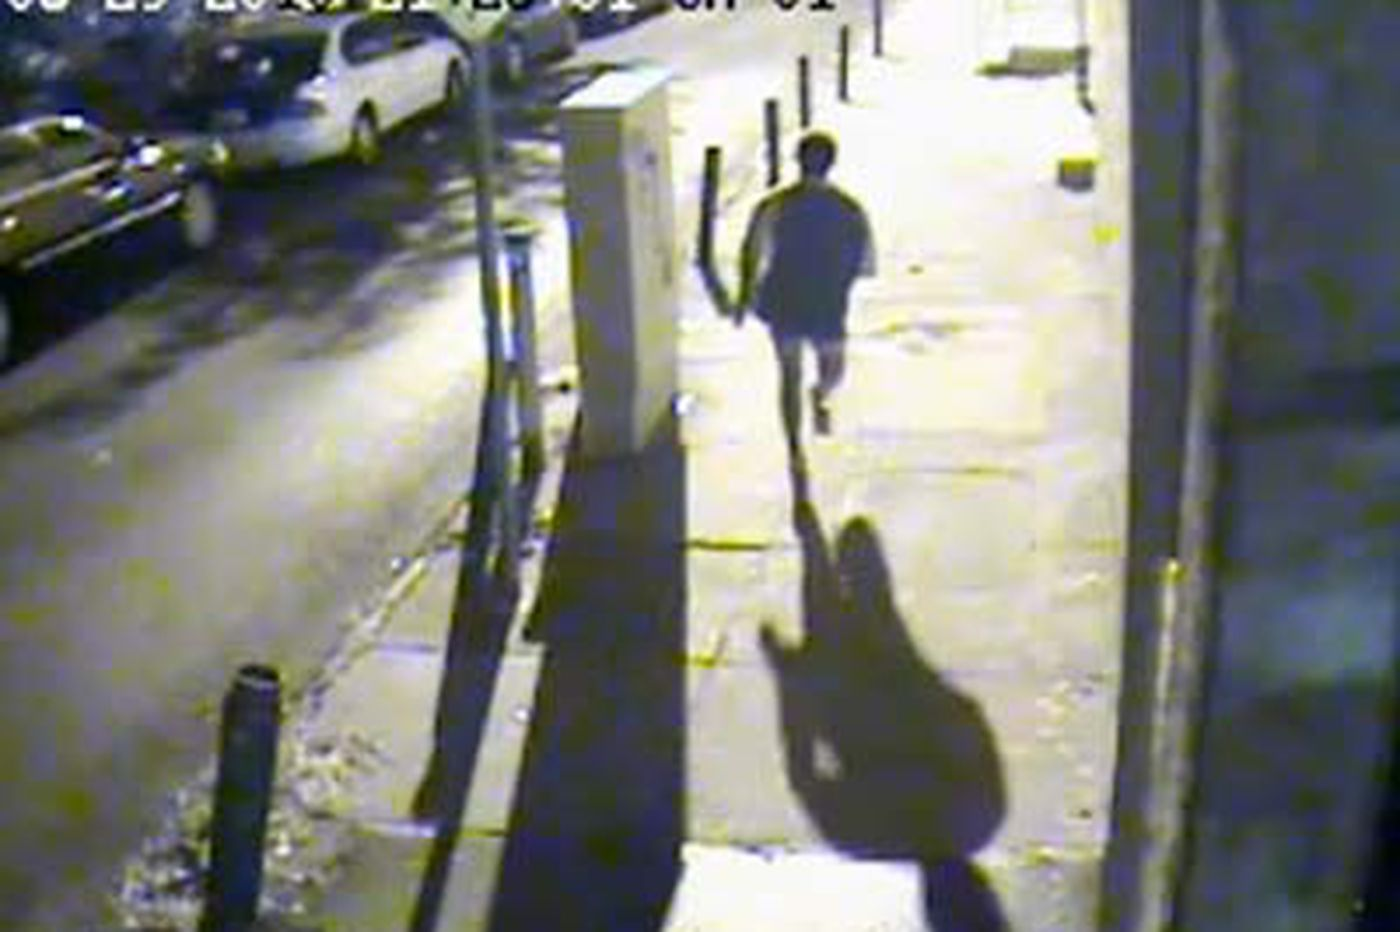 Man flees interrupted Phila. assault without pants